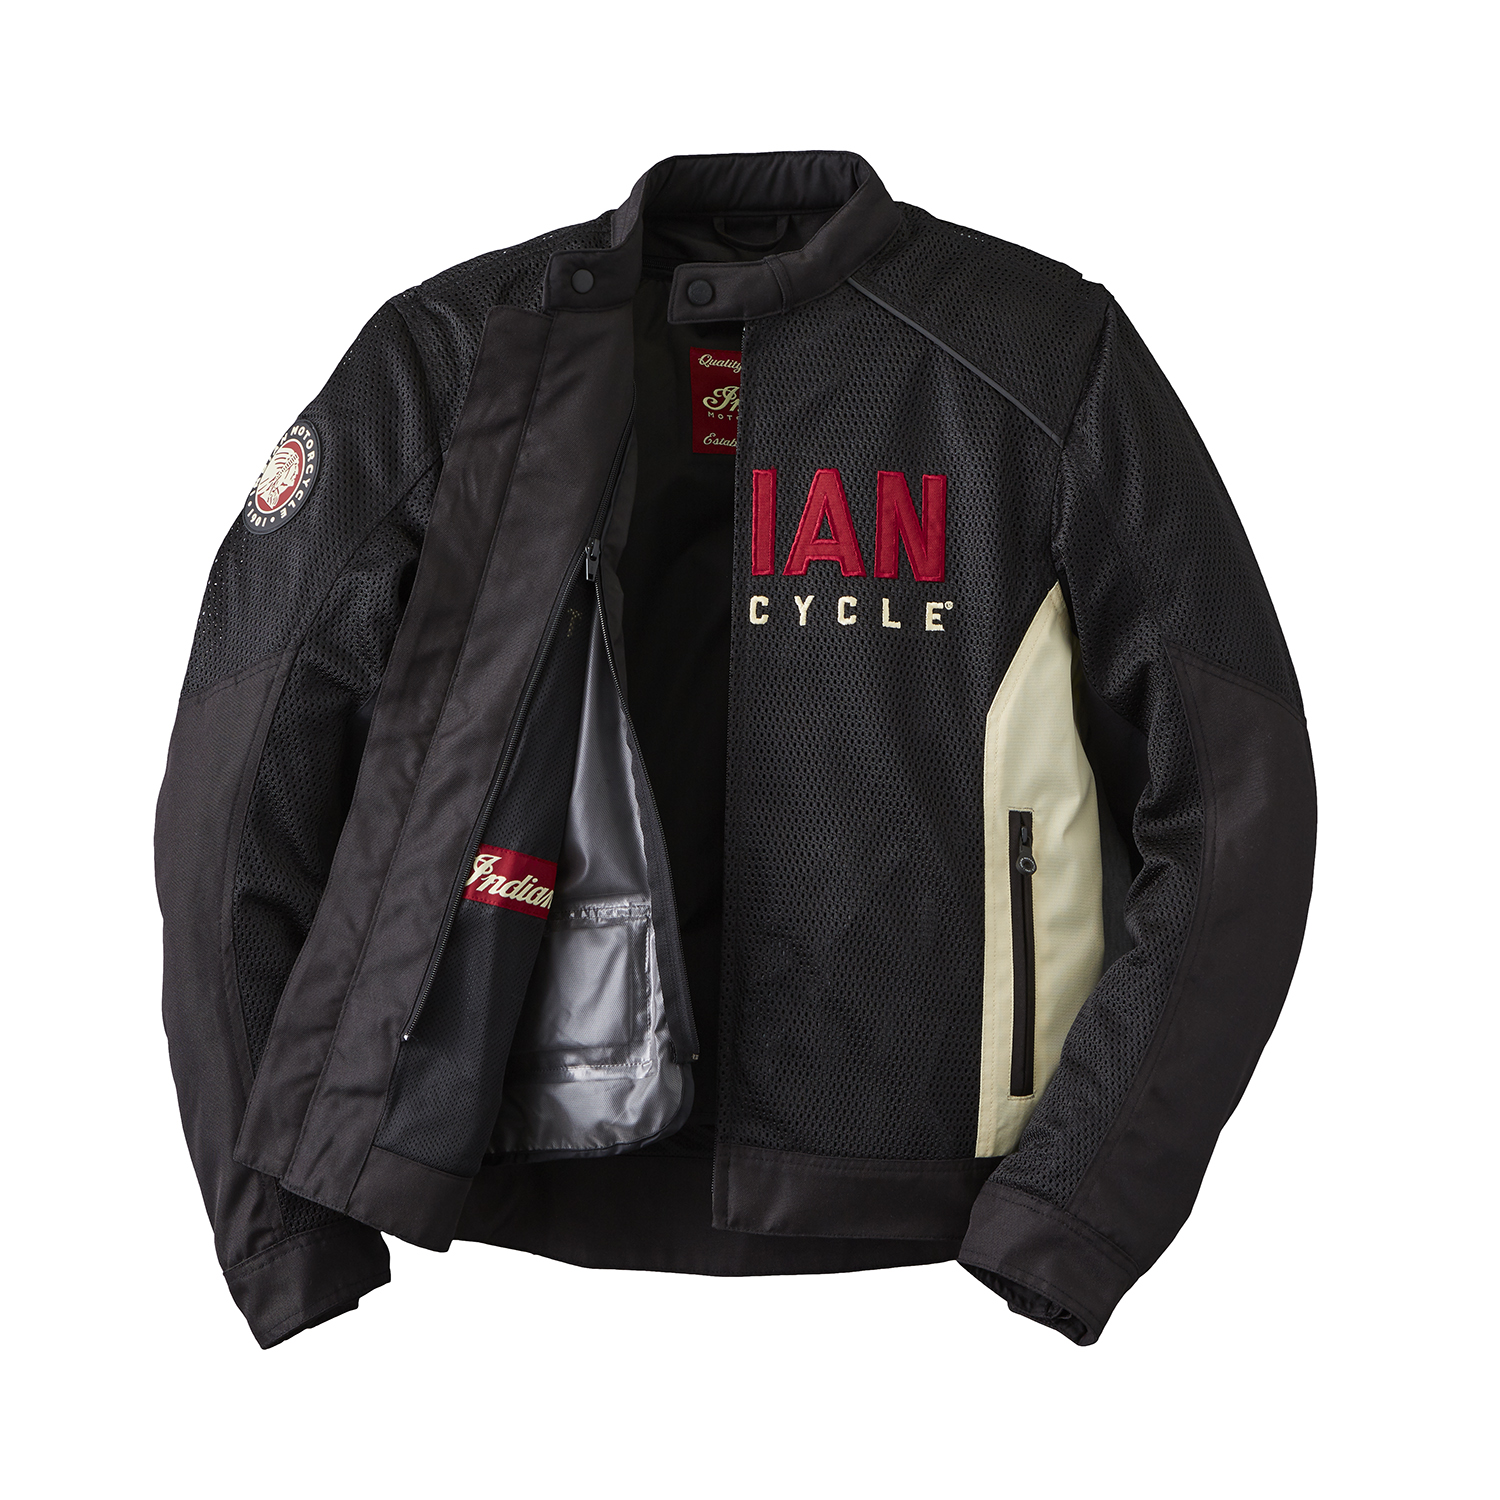 miniature 14 - Indian Motorcycle Men's Mesh Lightweight 2 Riding Jacket with Removable Liner